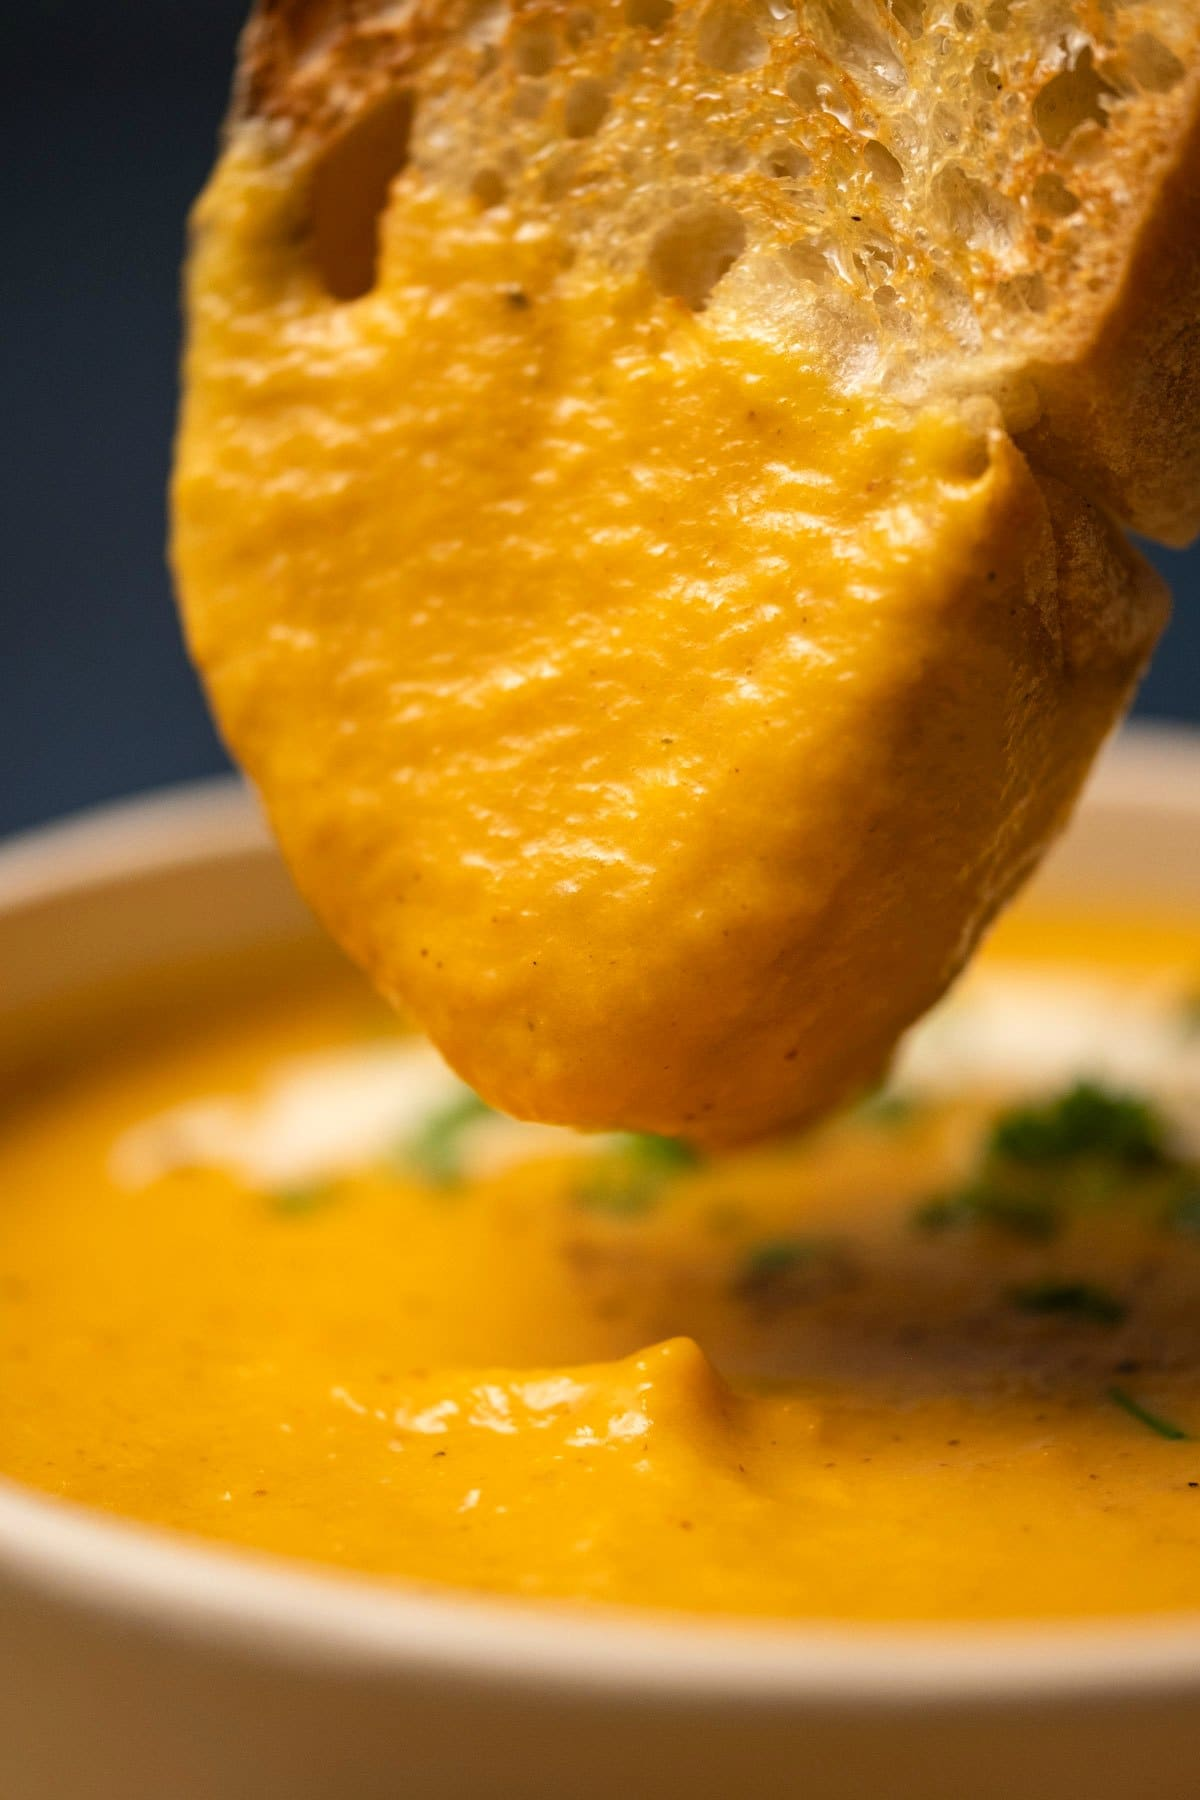 Slice of bread dipping into a bowl of sweet potato soup.